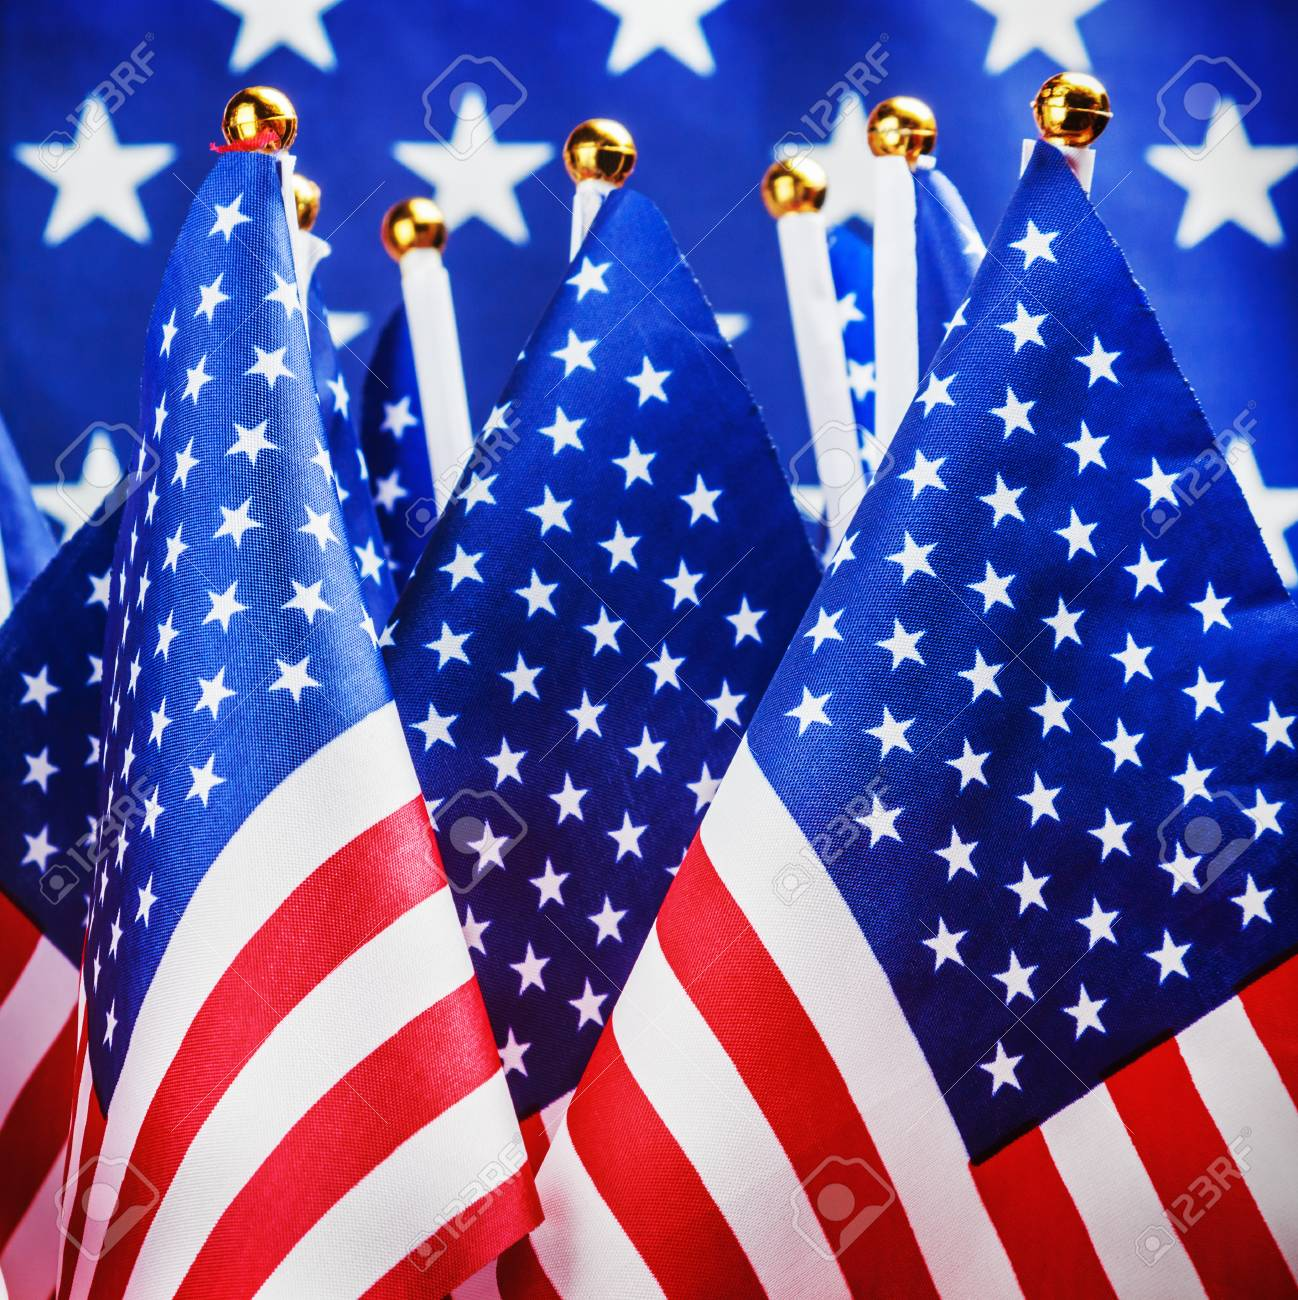 small american flags in